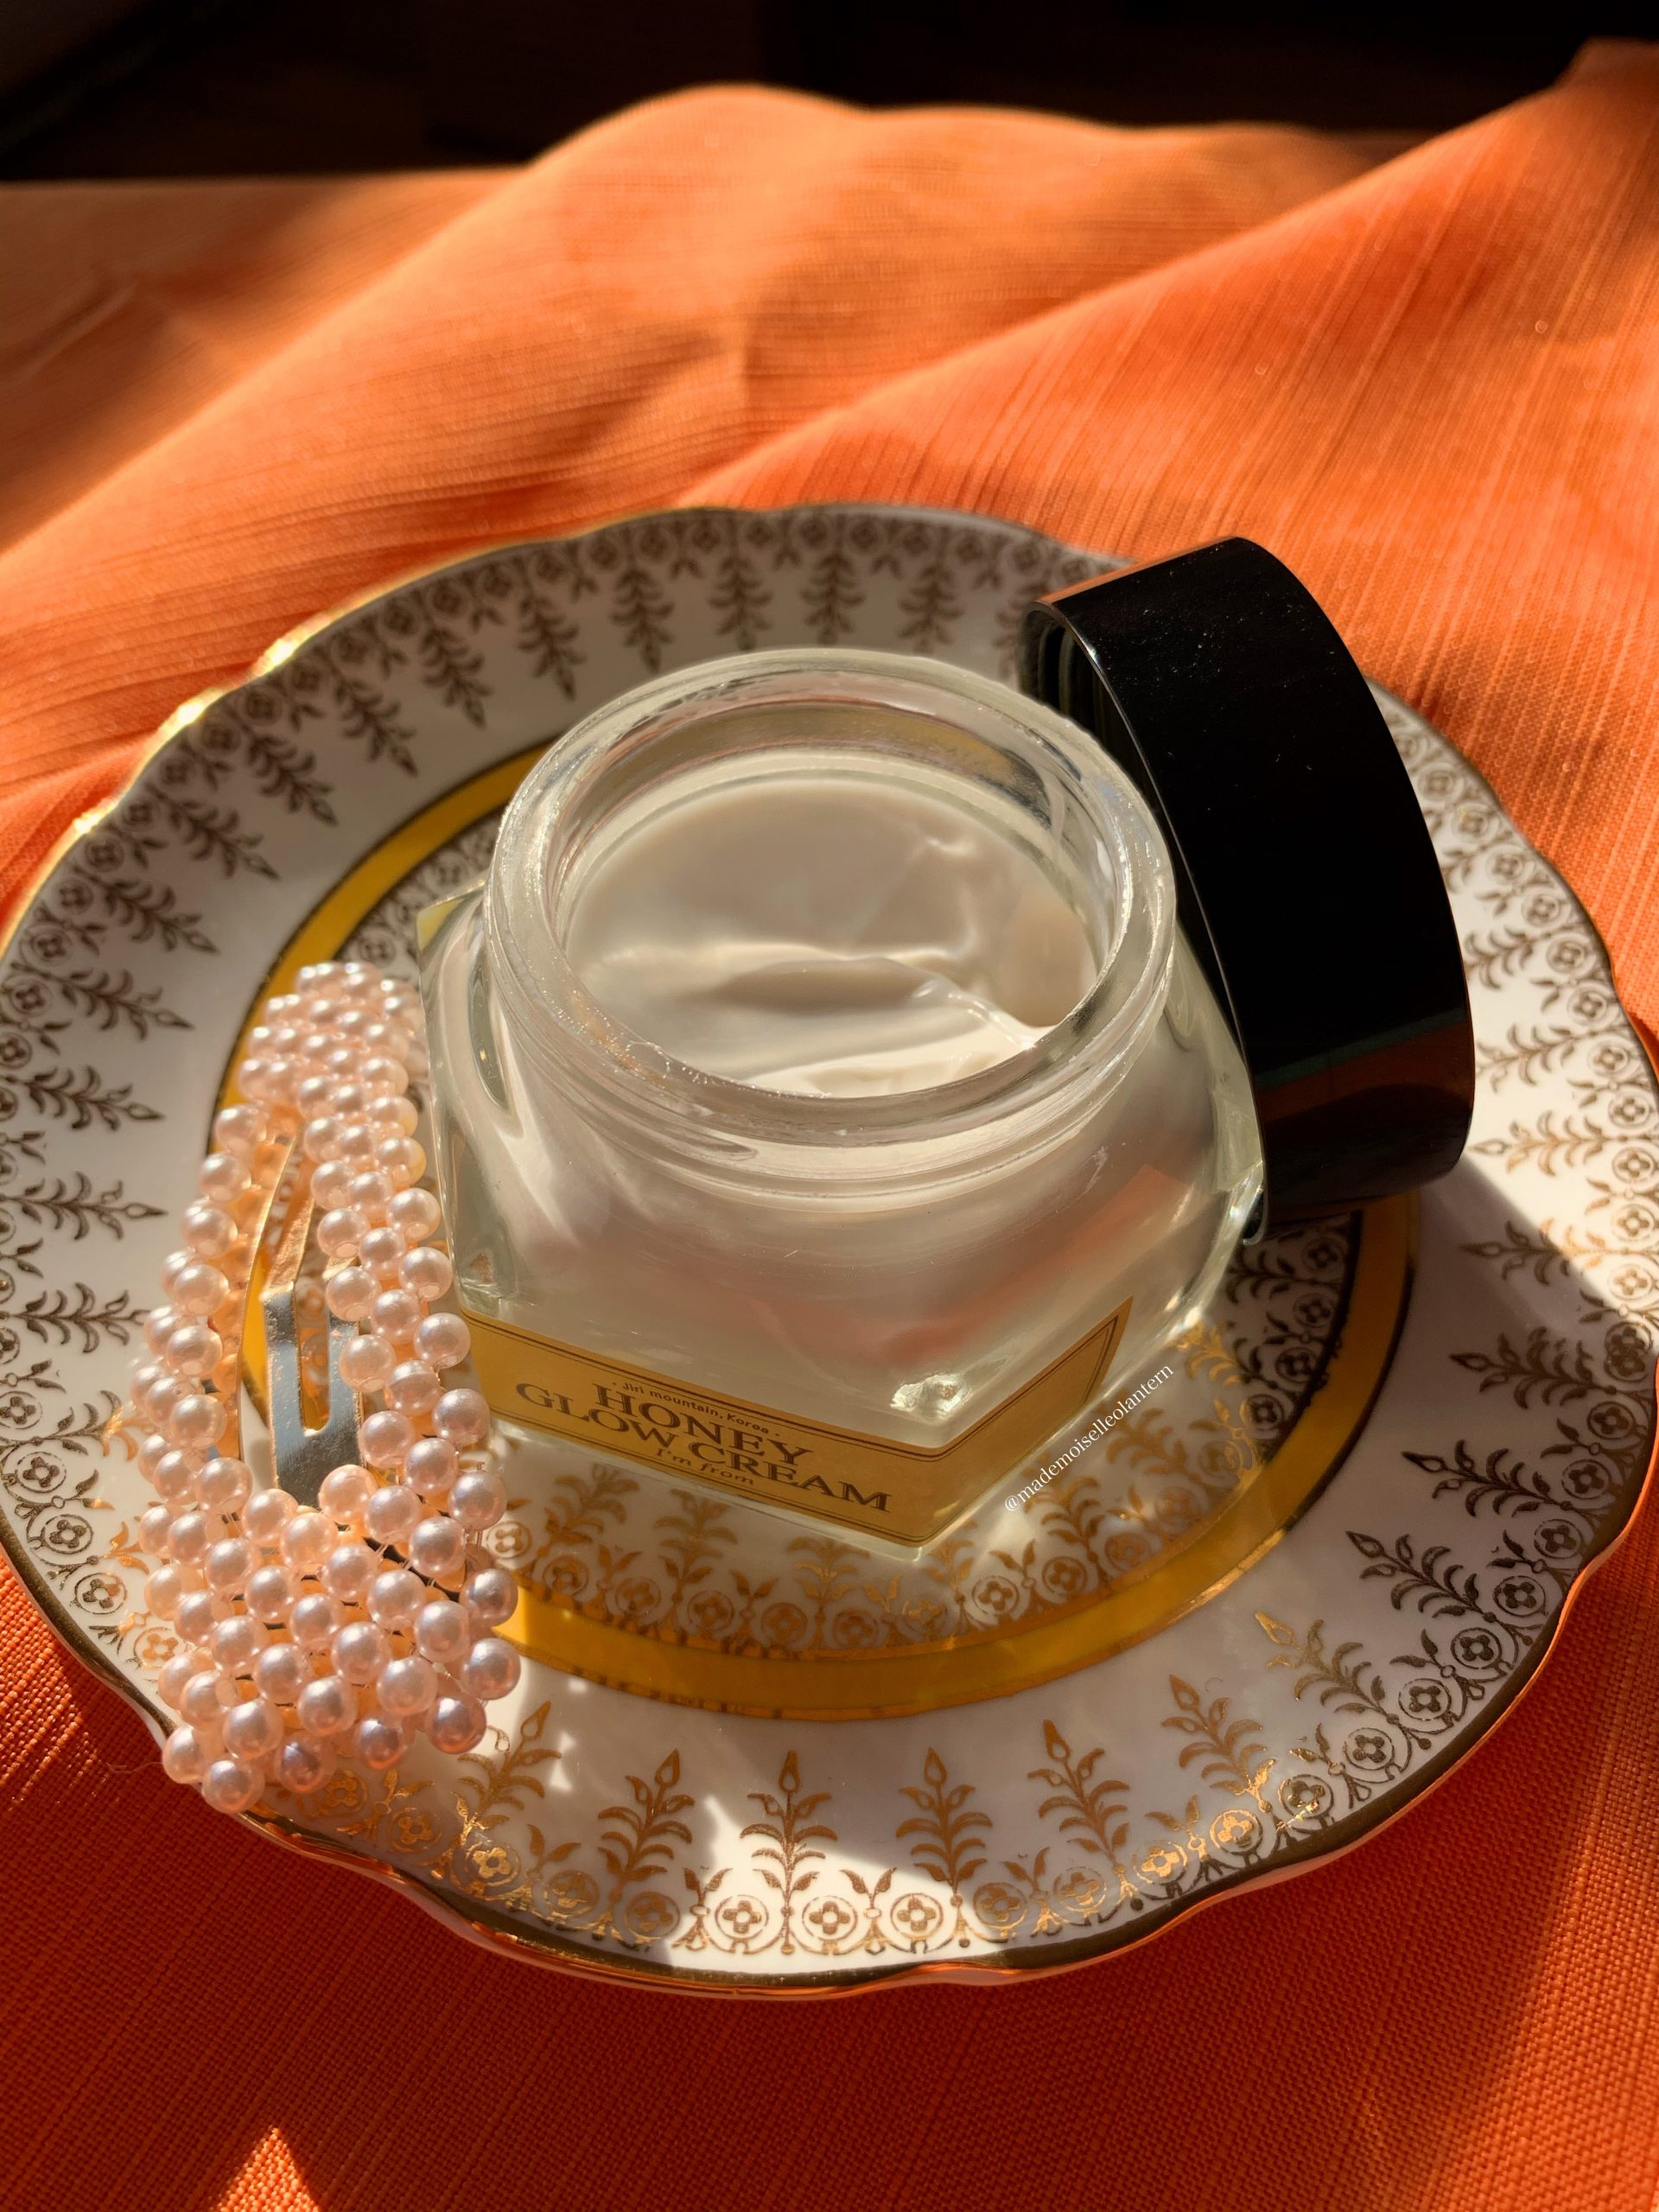 honey glow cream review 2.jpg